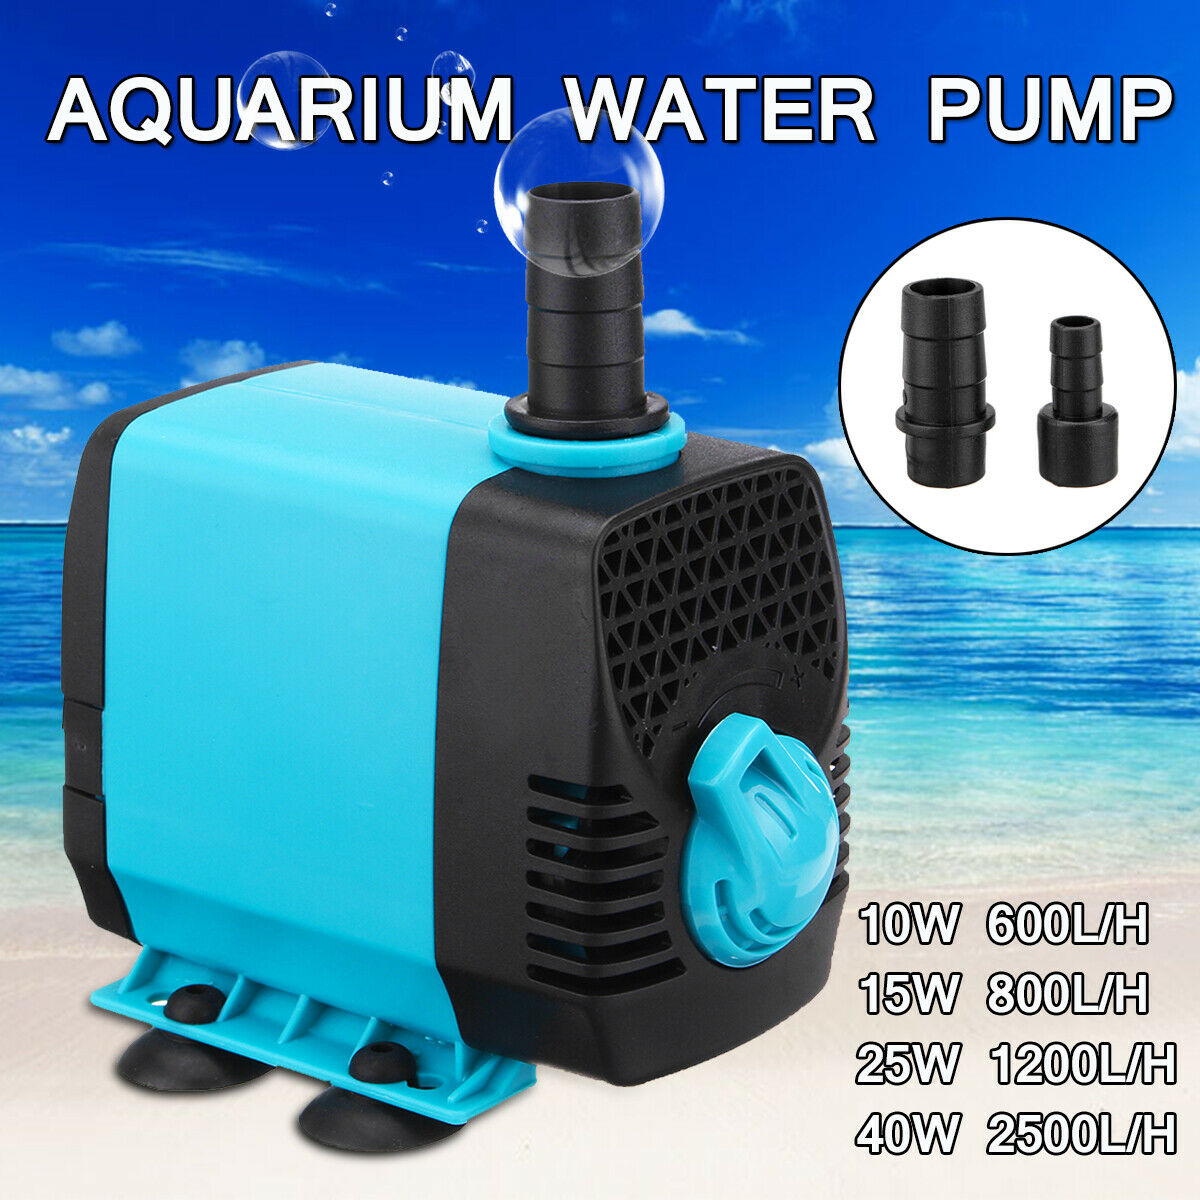 Submersible Aquarium <font><b>Water</b></font> <font><b>Pump</b></font> 10W 15W 25W 40W 55W AC110 Fish Tank Powerhead Fountain Hydroponic Ultra-quiet <font><b>Water</b></font> <font><b>Pump</b></font> US Plug image